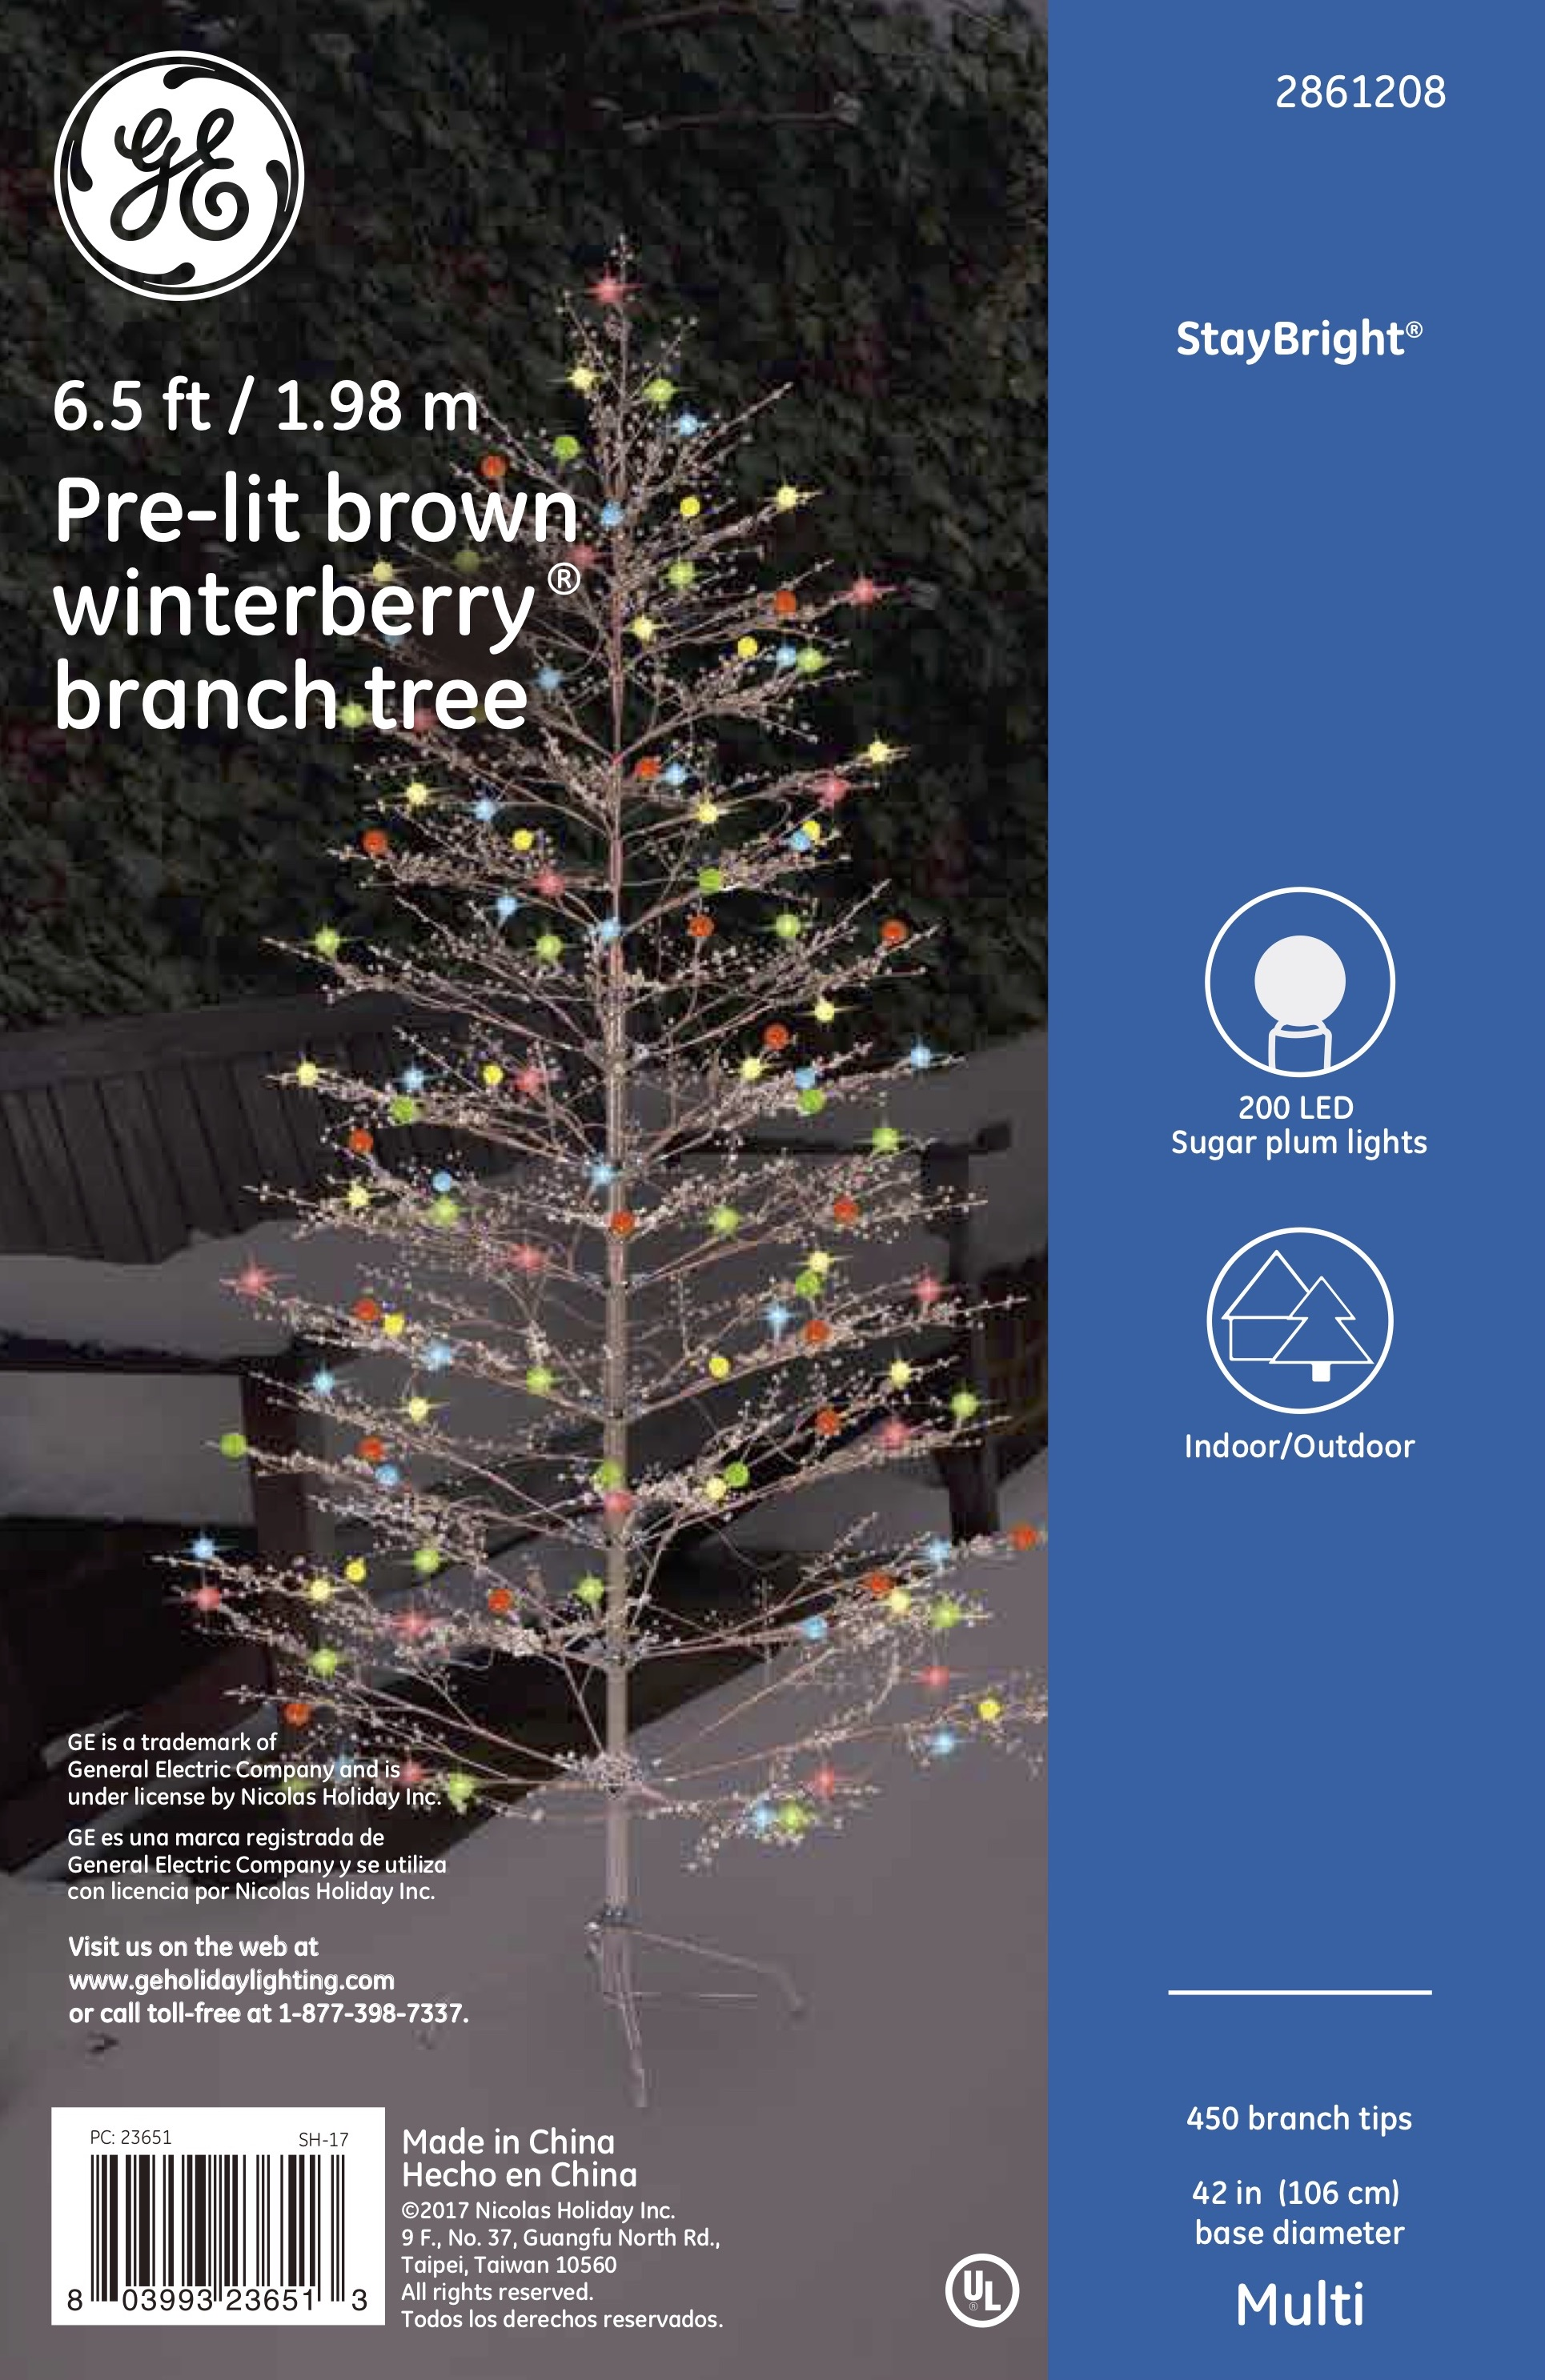 23651 Ge Brown Winterberry 174 Branch Tree 6 5 Ft Energy